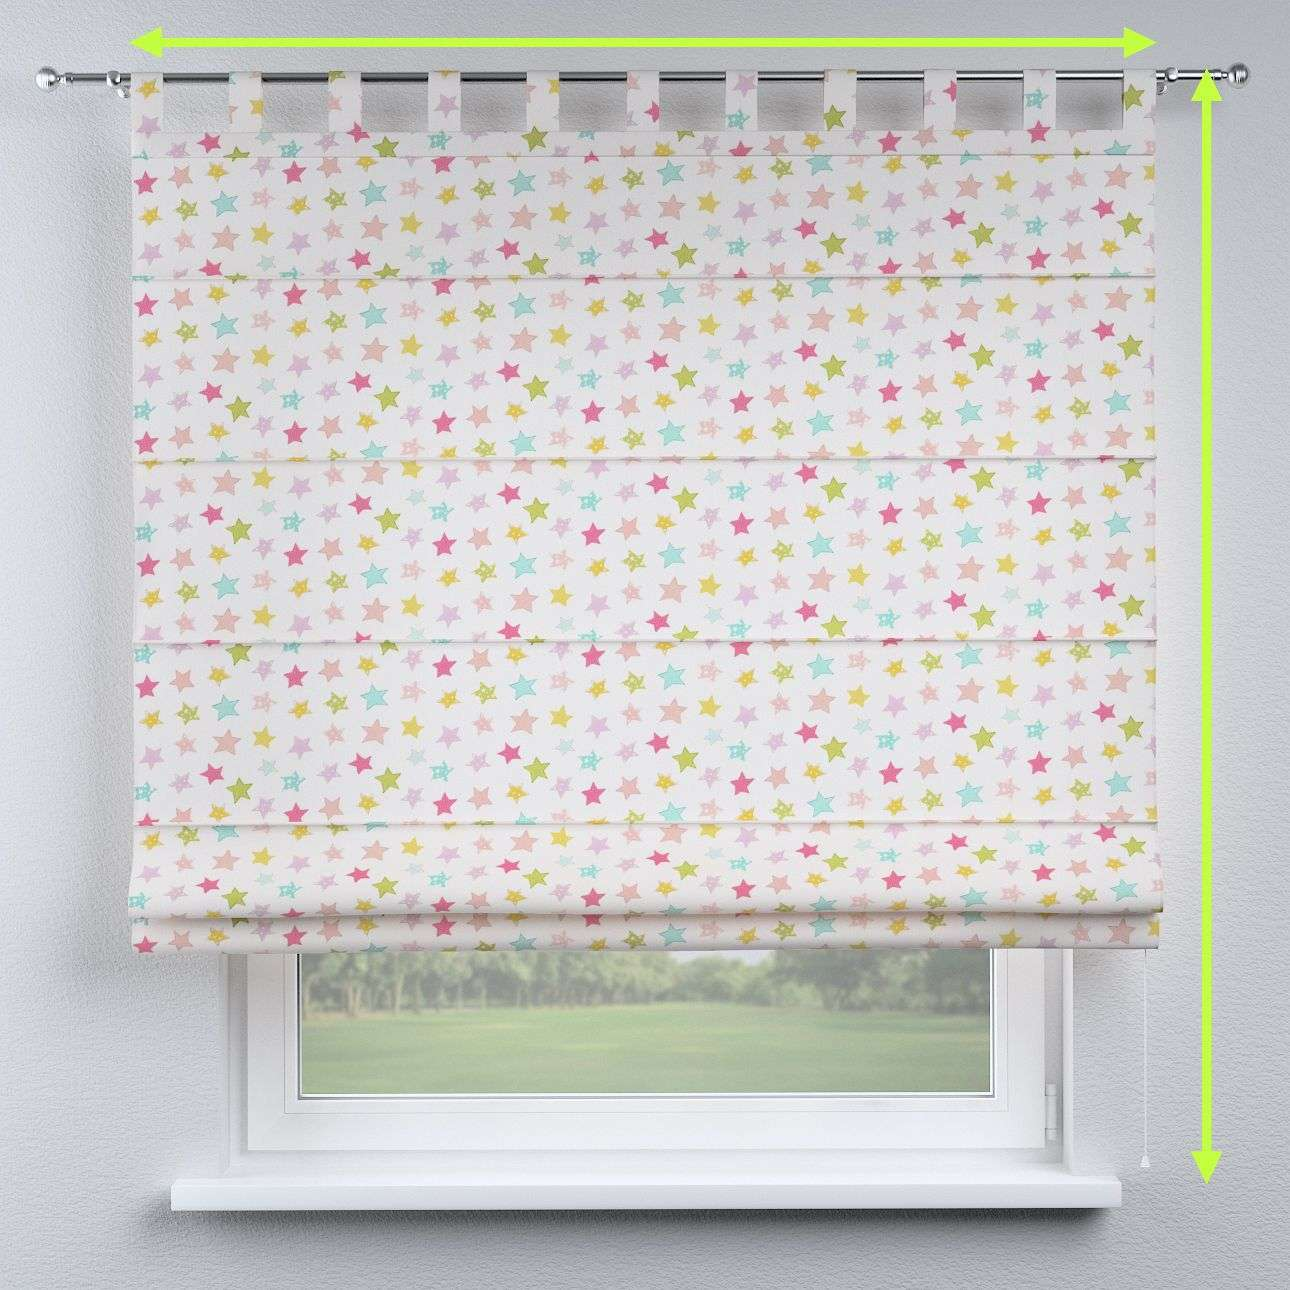 Verona tab top roman blind in collection Little World, fabric: 141-52